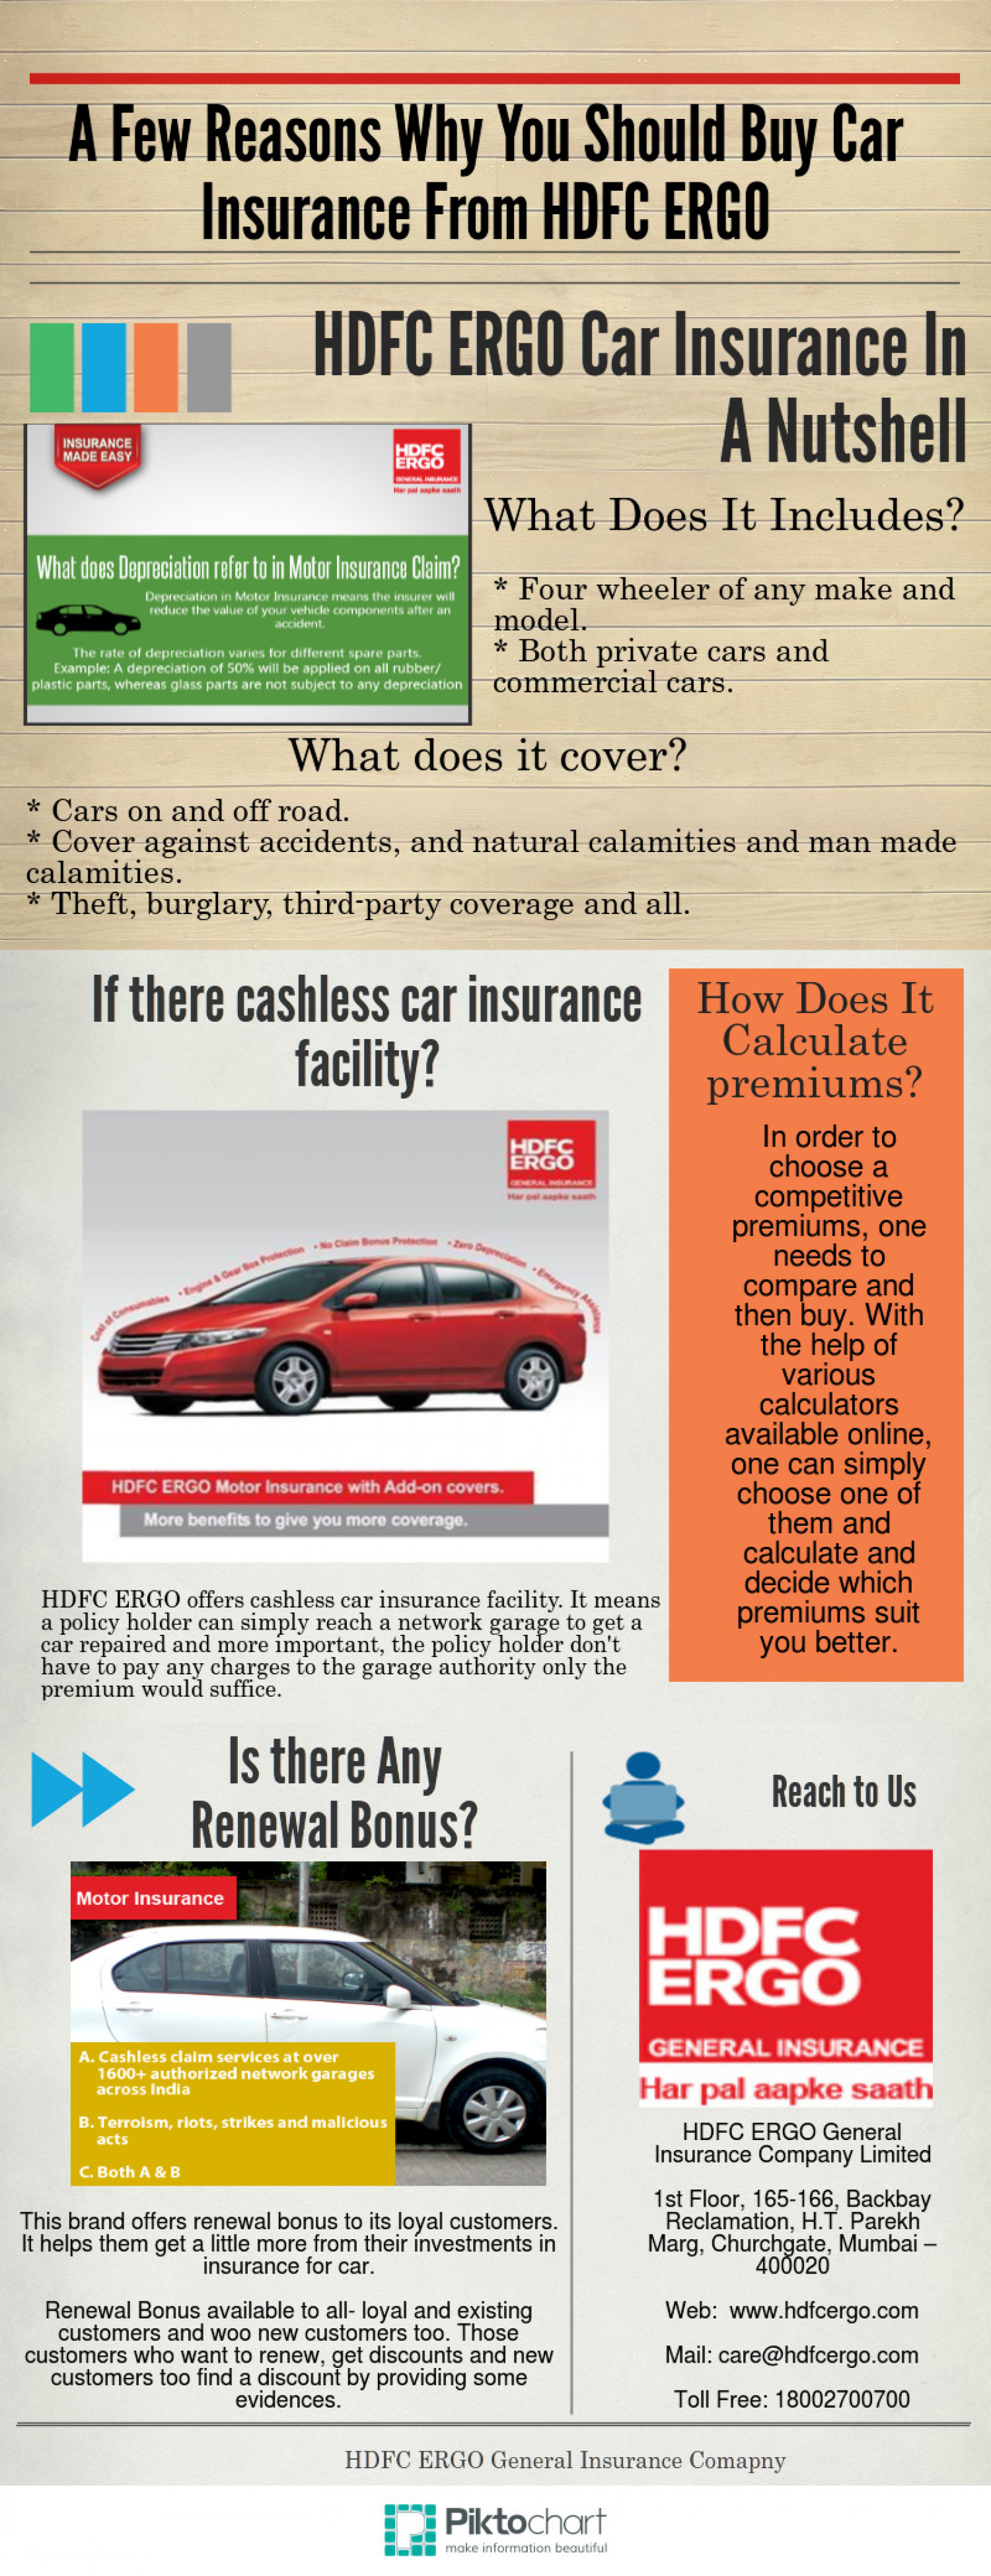 A Few Reasons Why You Should Buy Car Insurance From HDFC